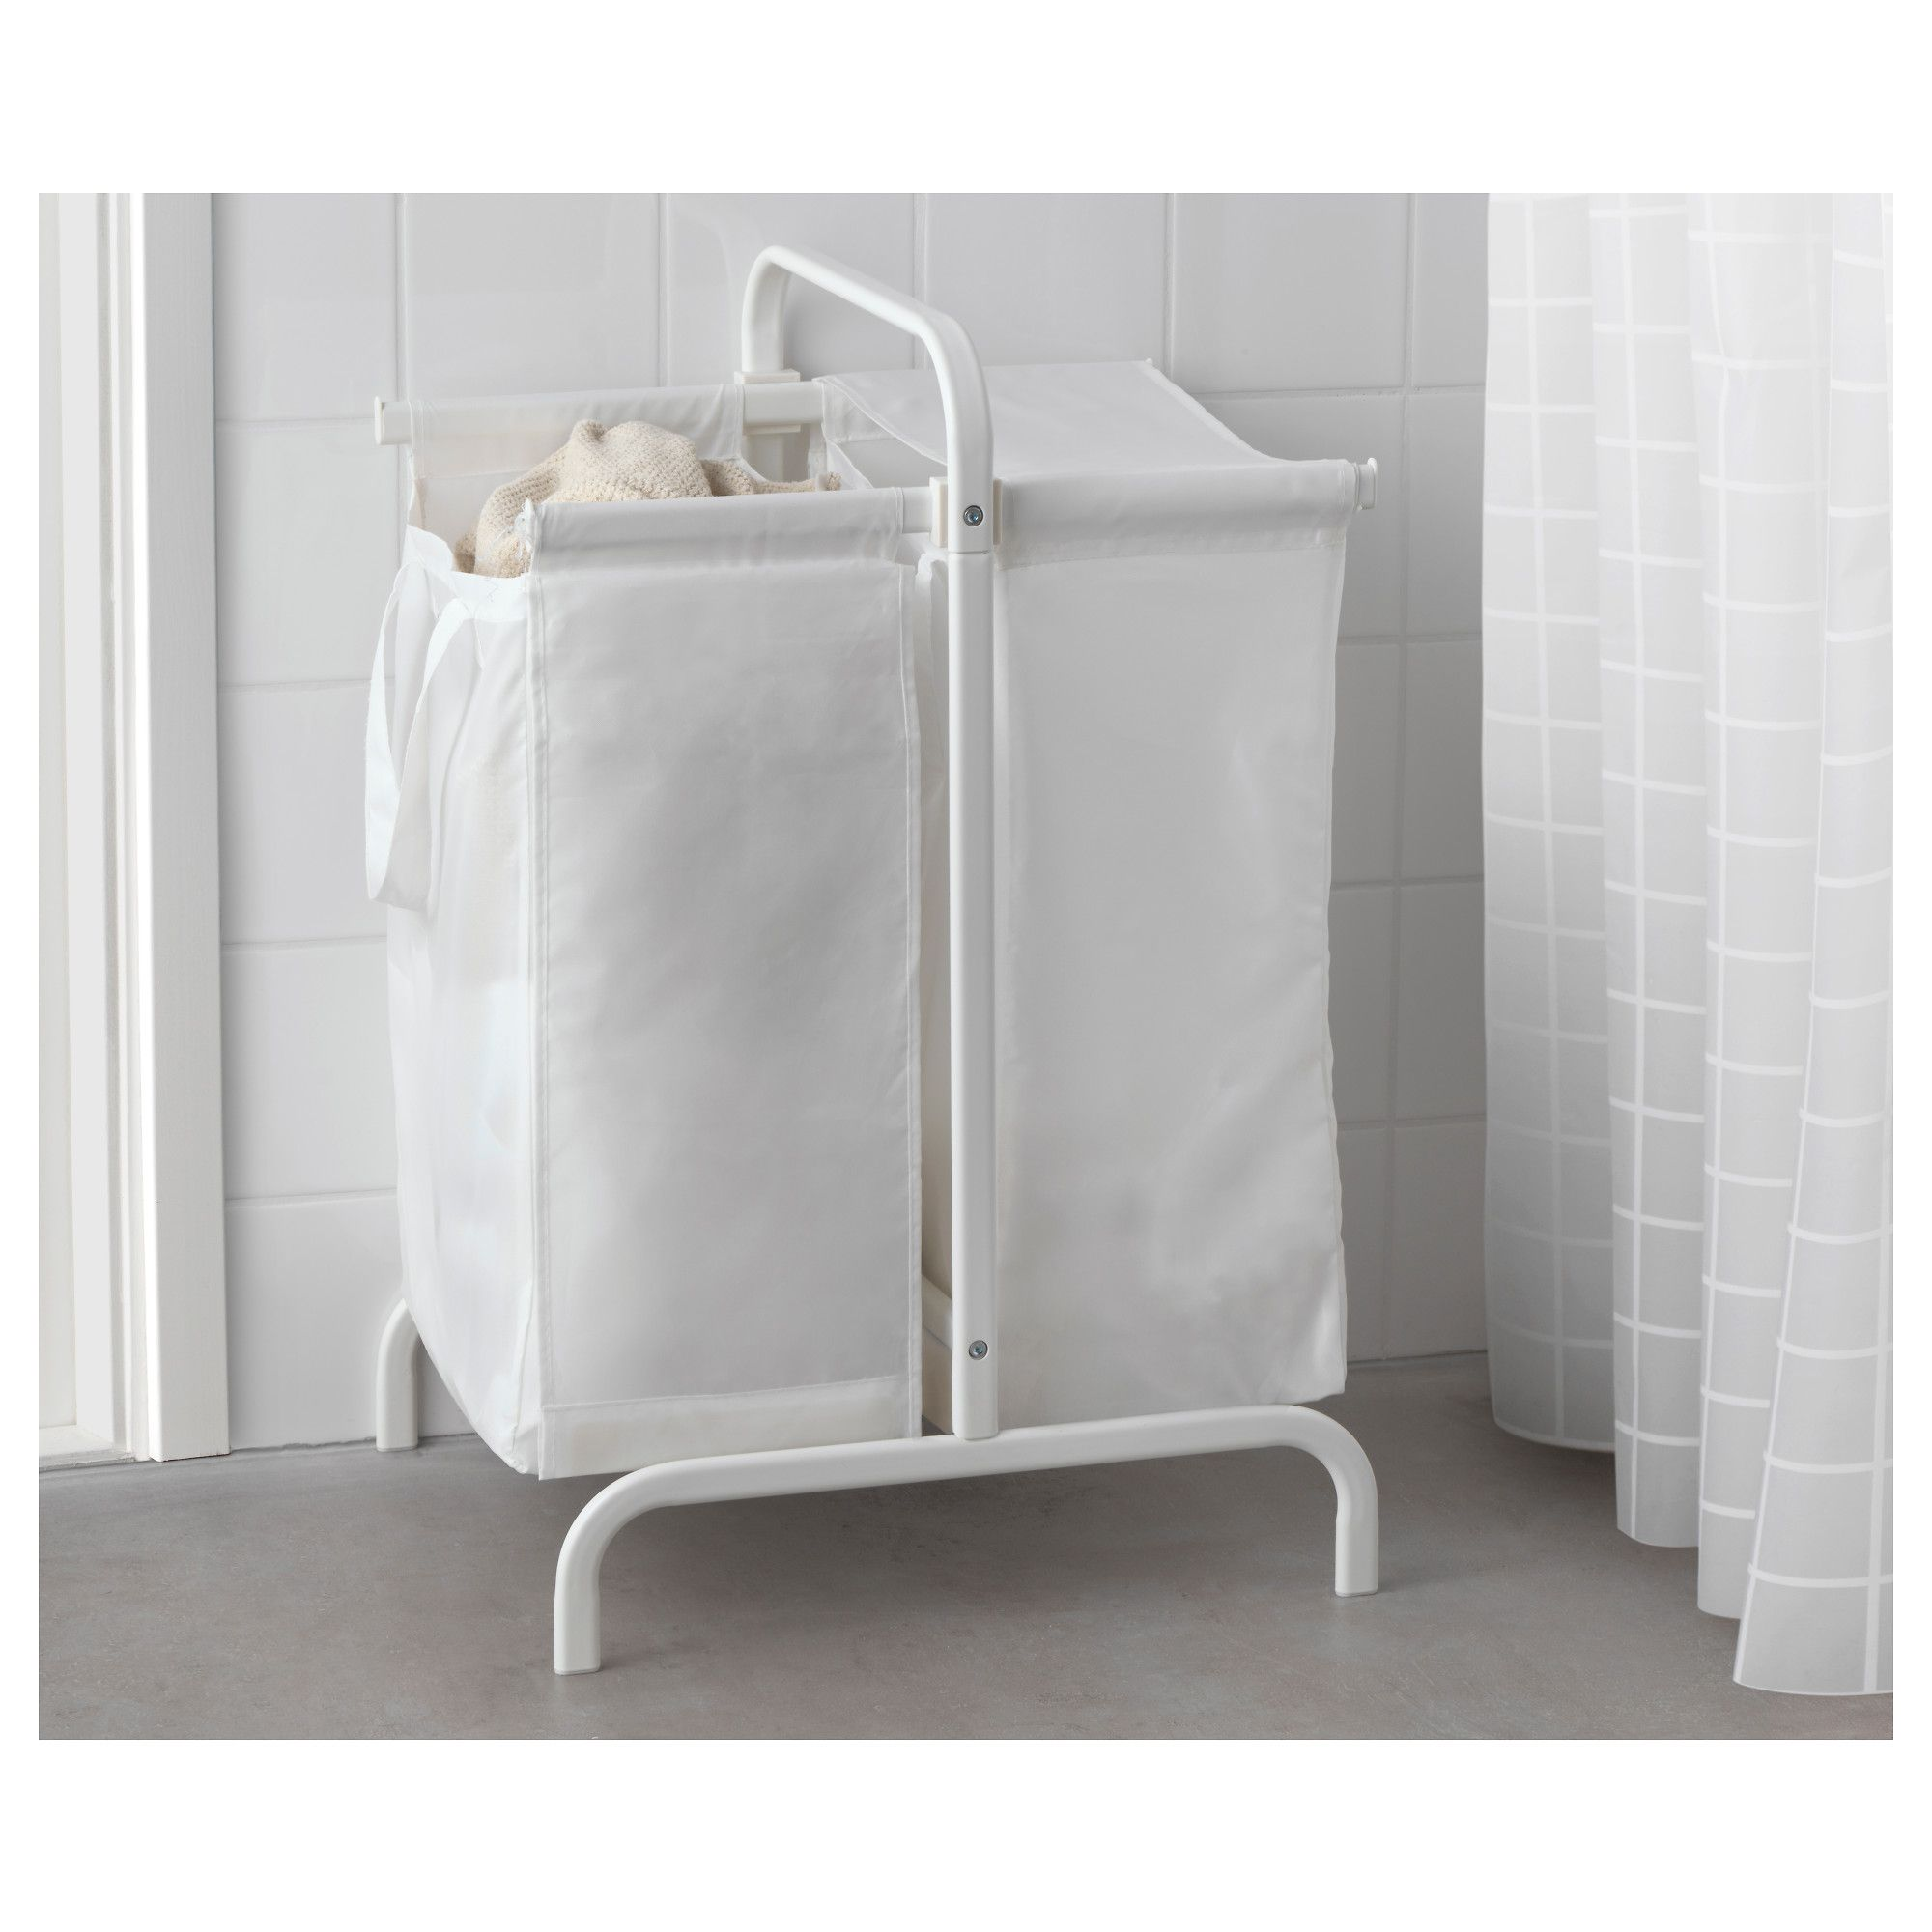 Separate Laundry Basket Ikea Mulig Laundry Bag With Stand You Can Sort Your Light